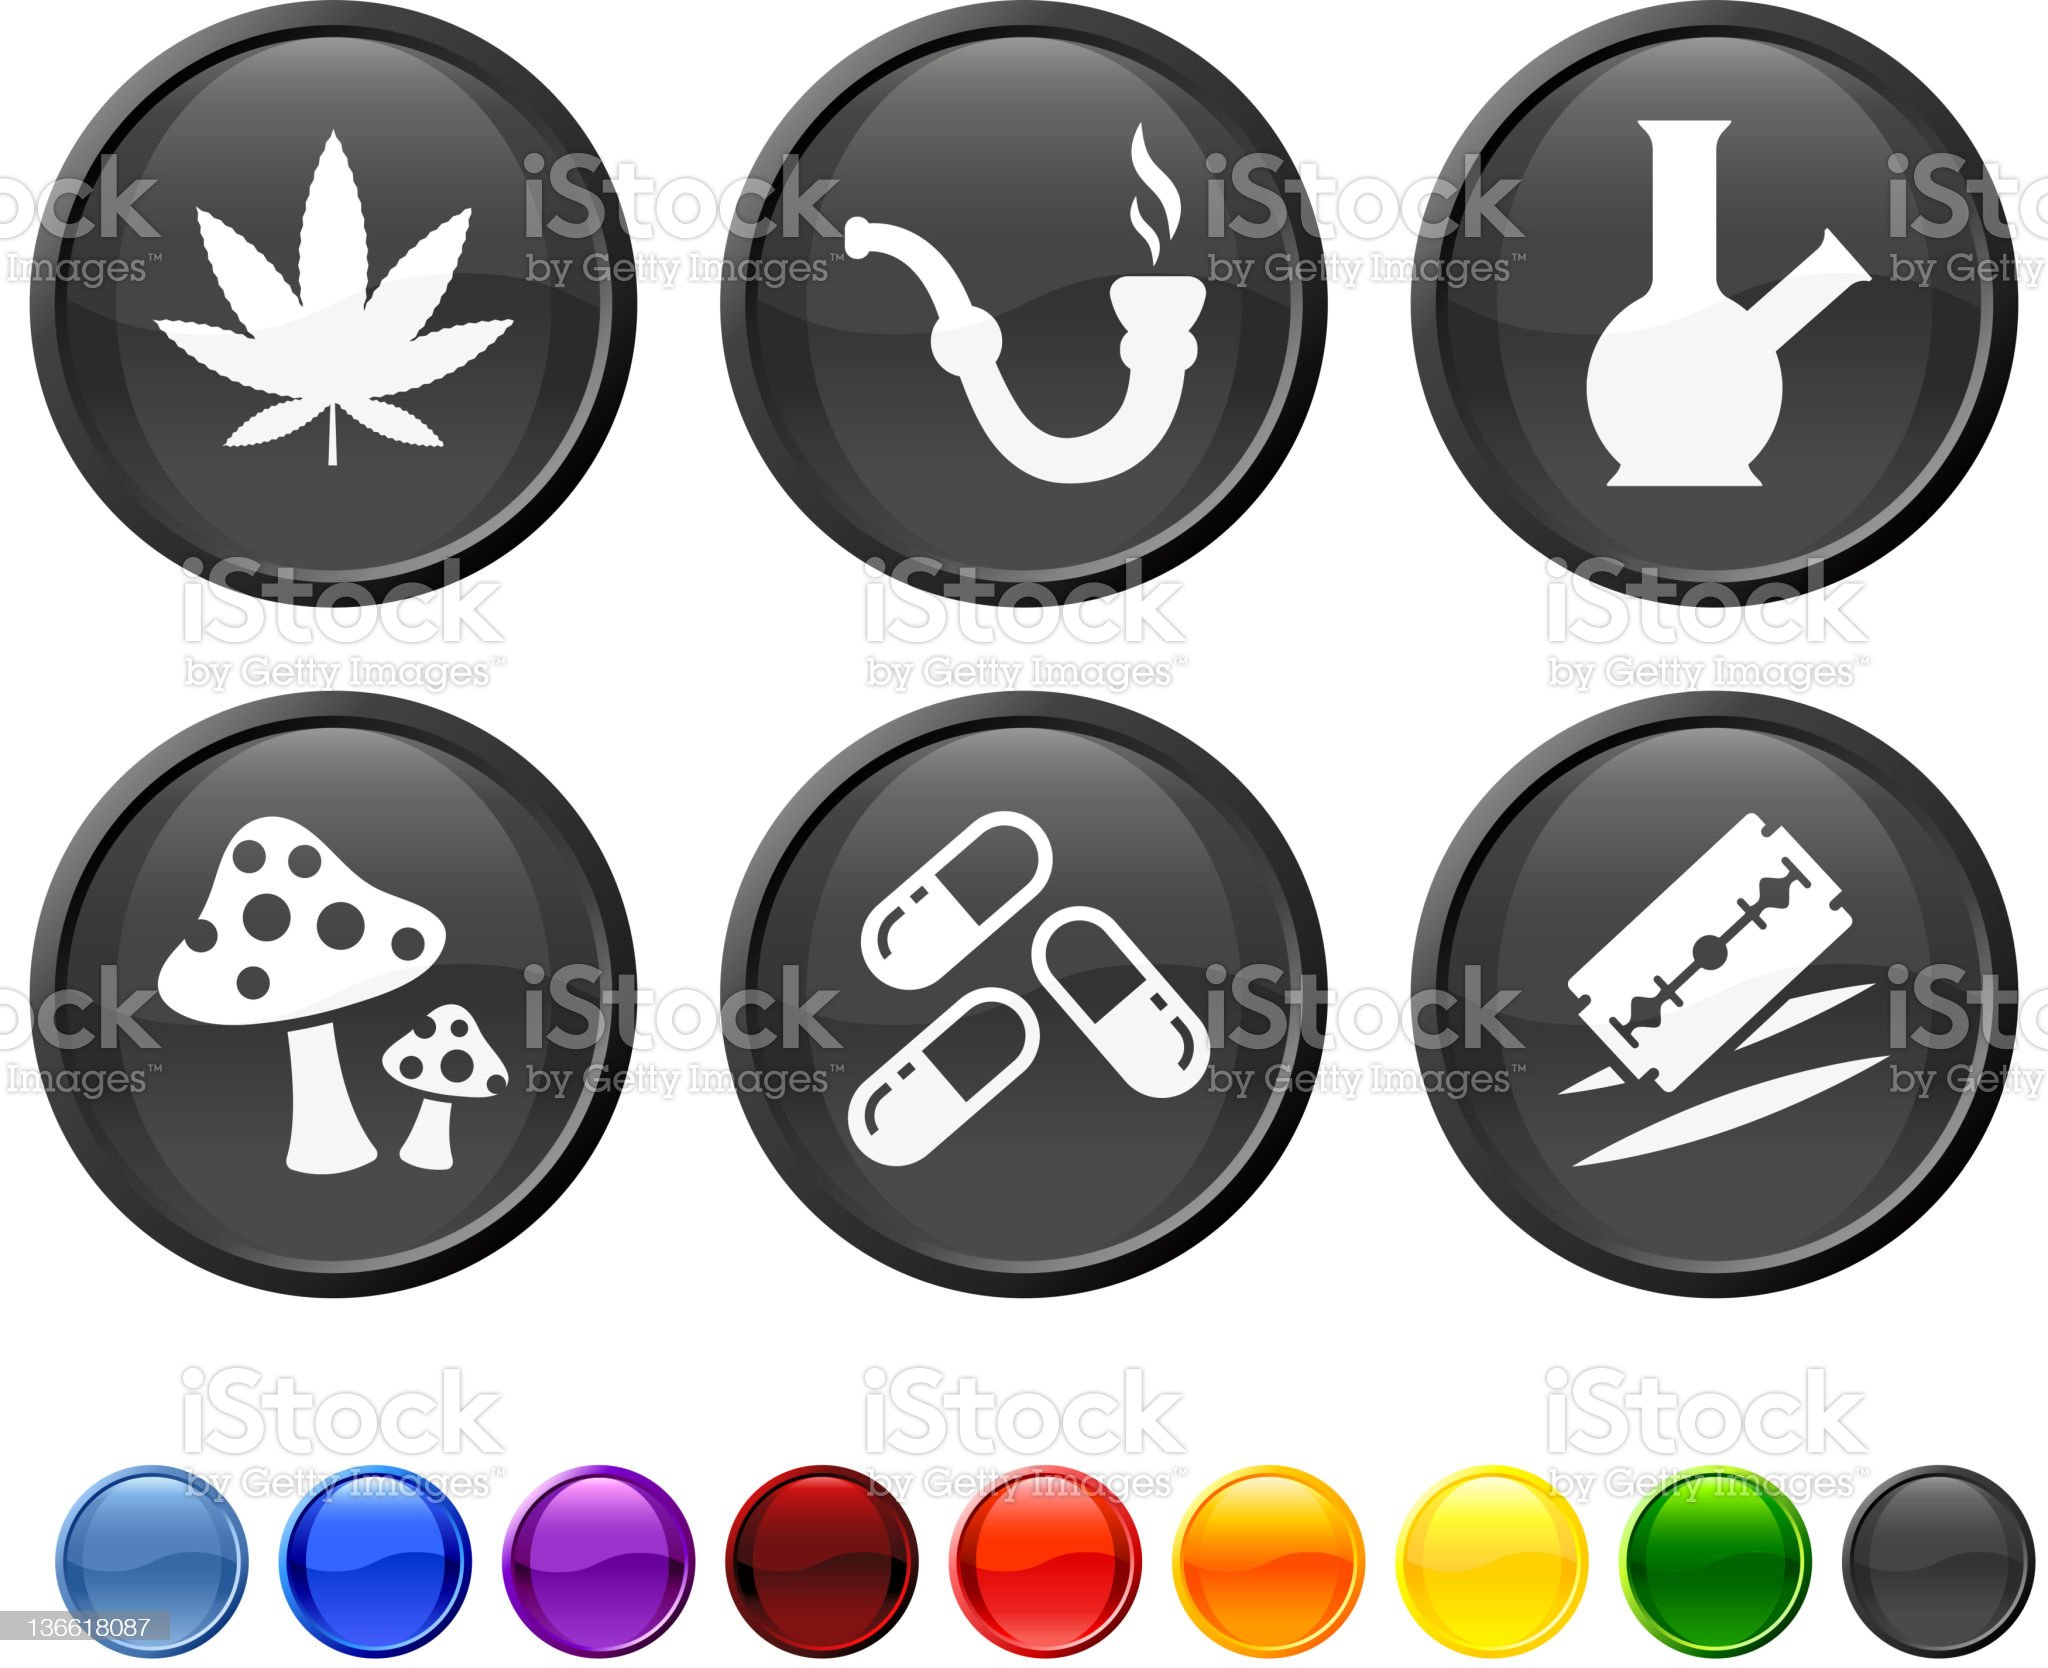 recreational drugs royalty free vector icon set royalty-free stock vector art